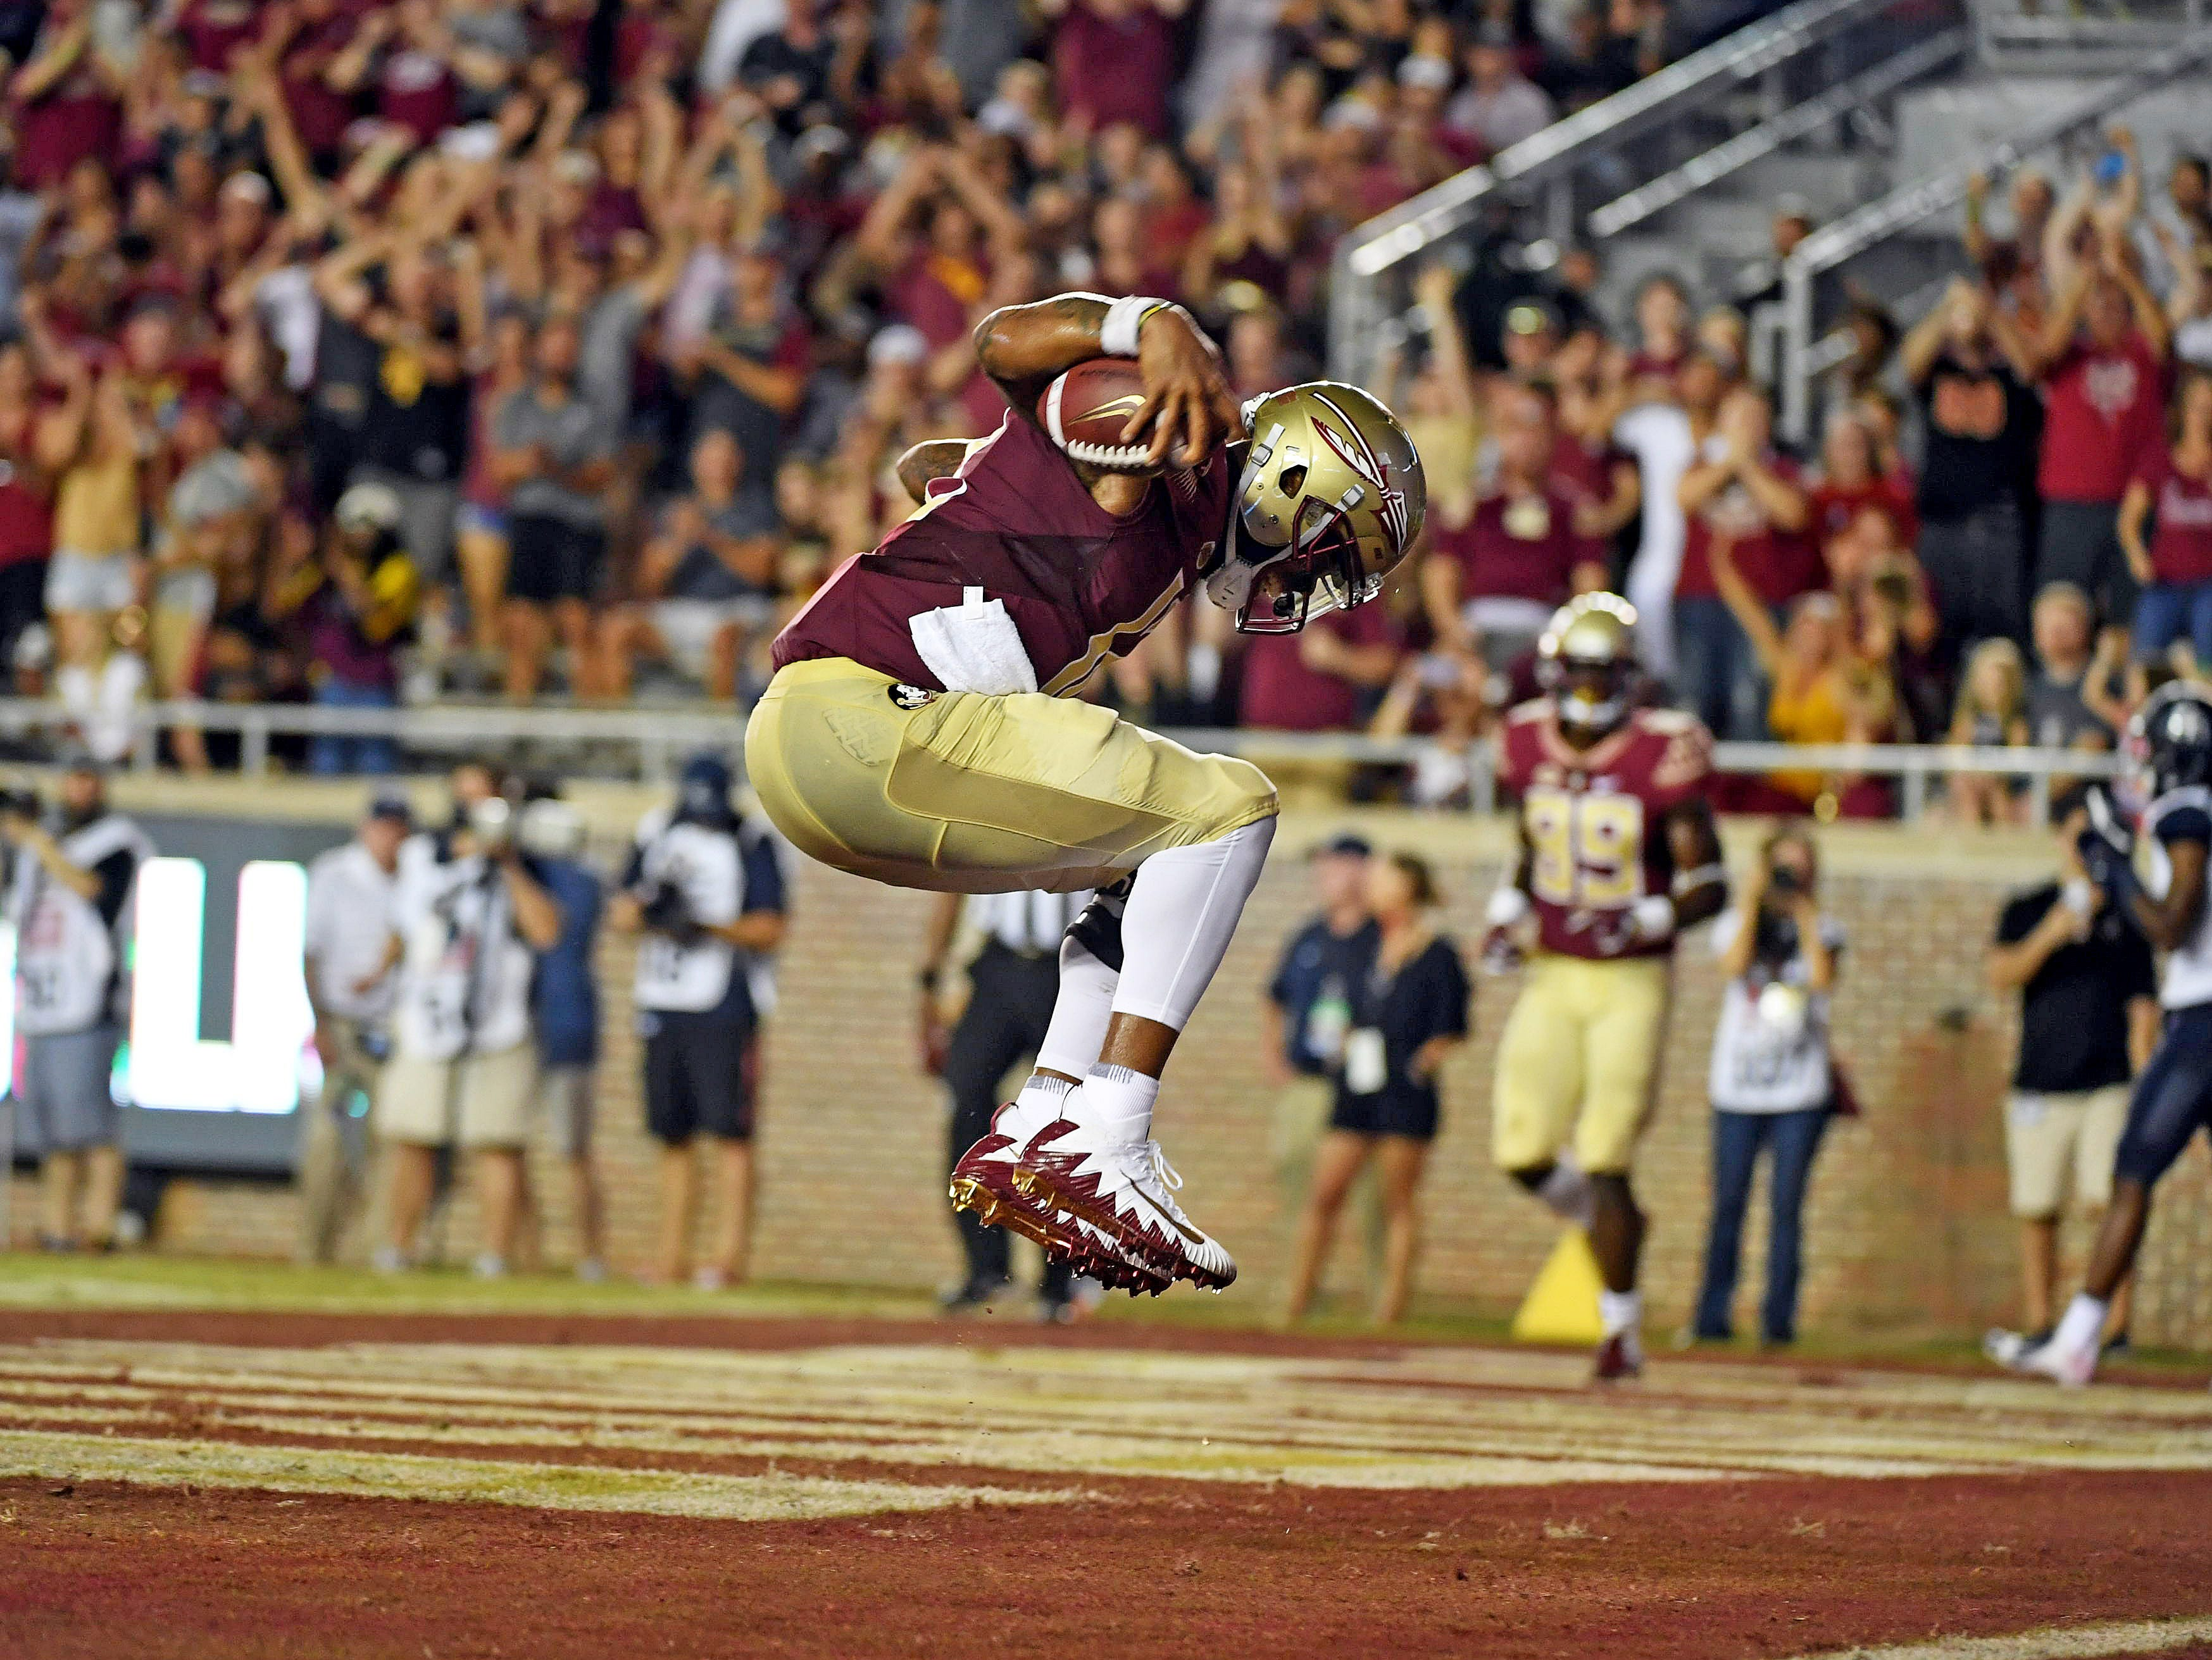 Florida State Seminoles quarterback Deondre Francois (12) celebrates after a touchdown in the first half against the Samford Bulldogs at Doak Campbell Stadium. Mandatory